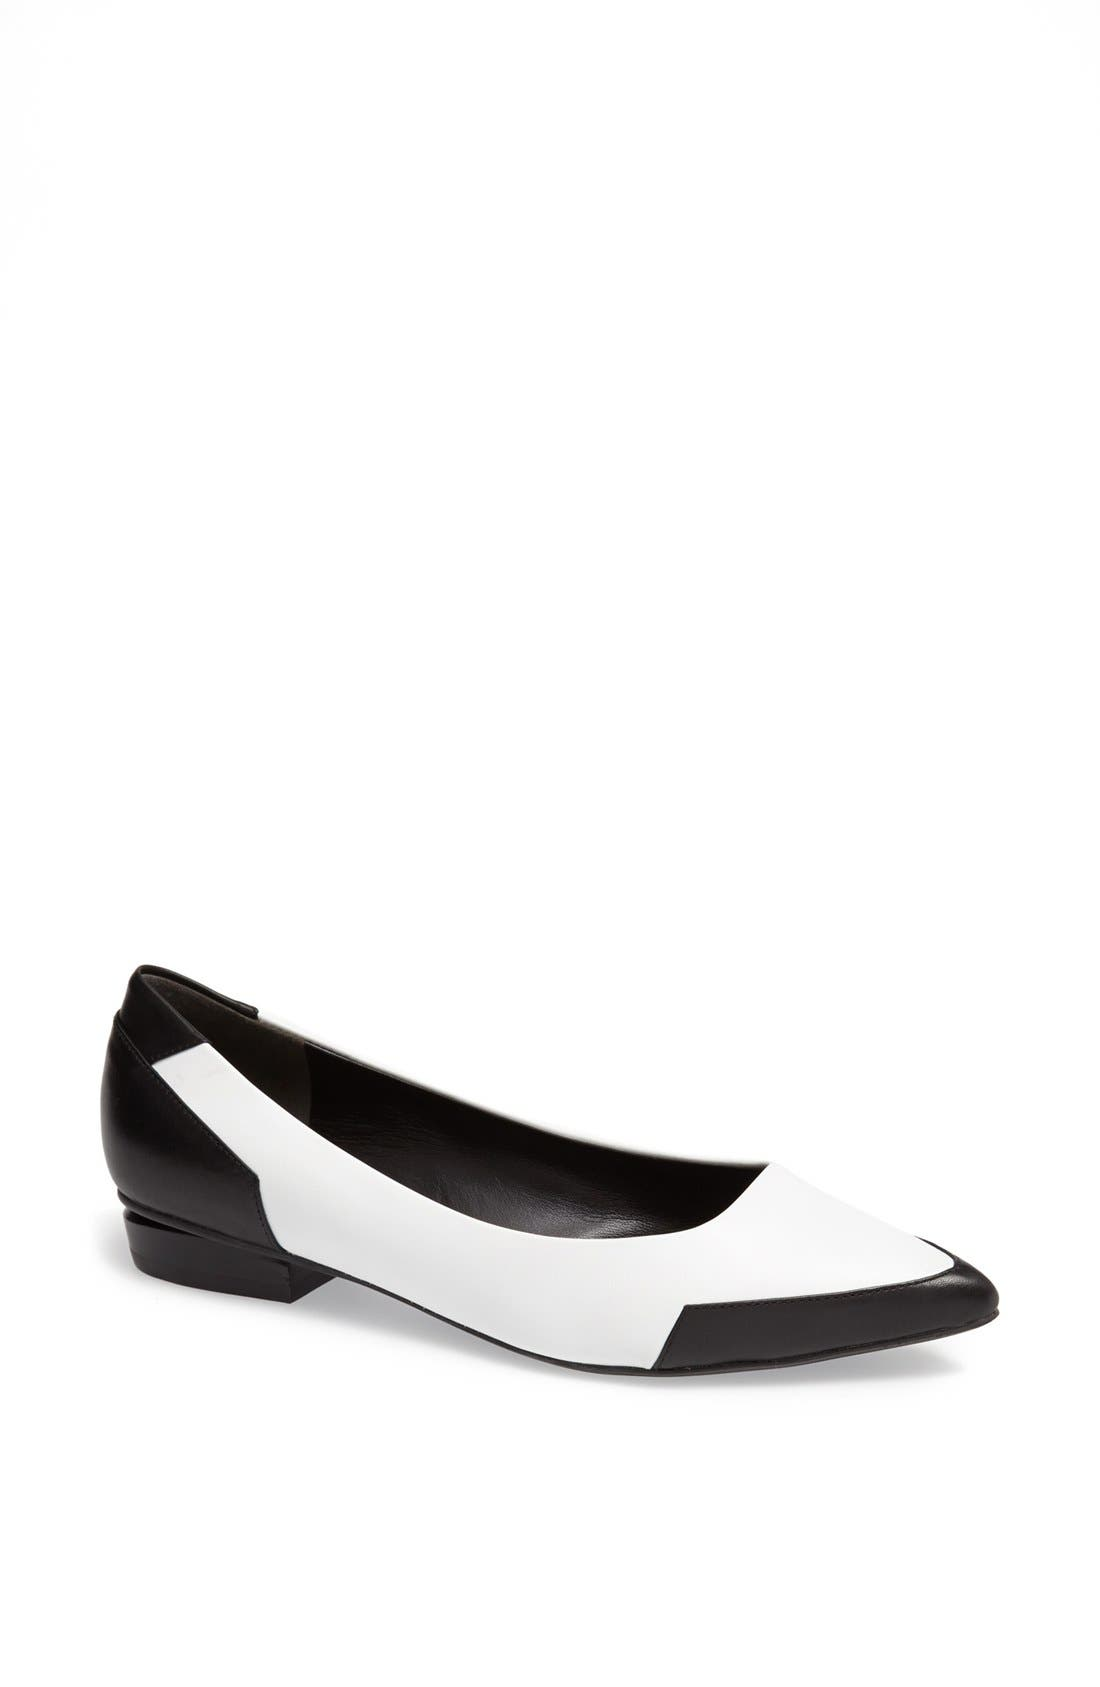 Main Image - Kenneth Cole New York 'Mulberry' Leather Flat